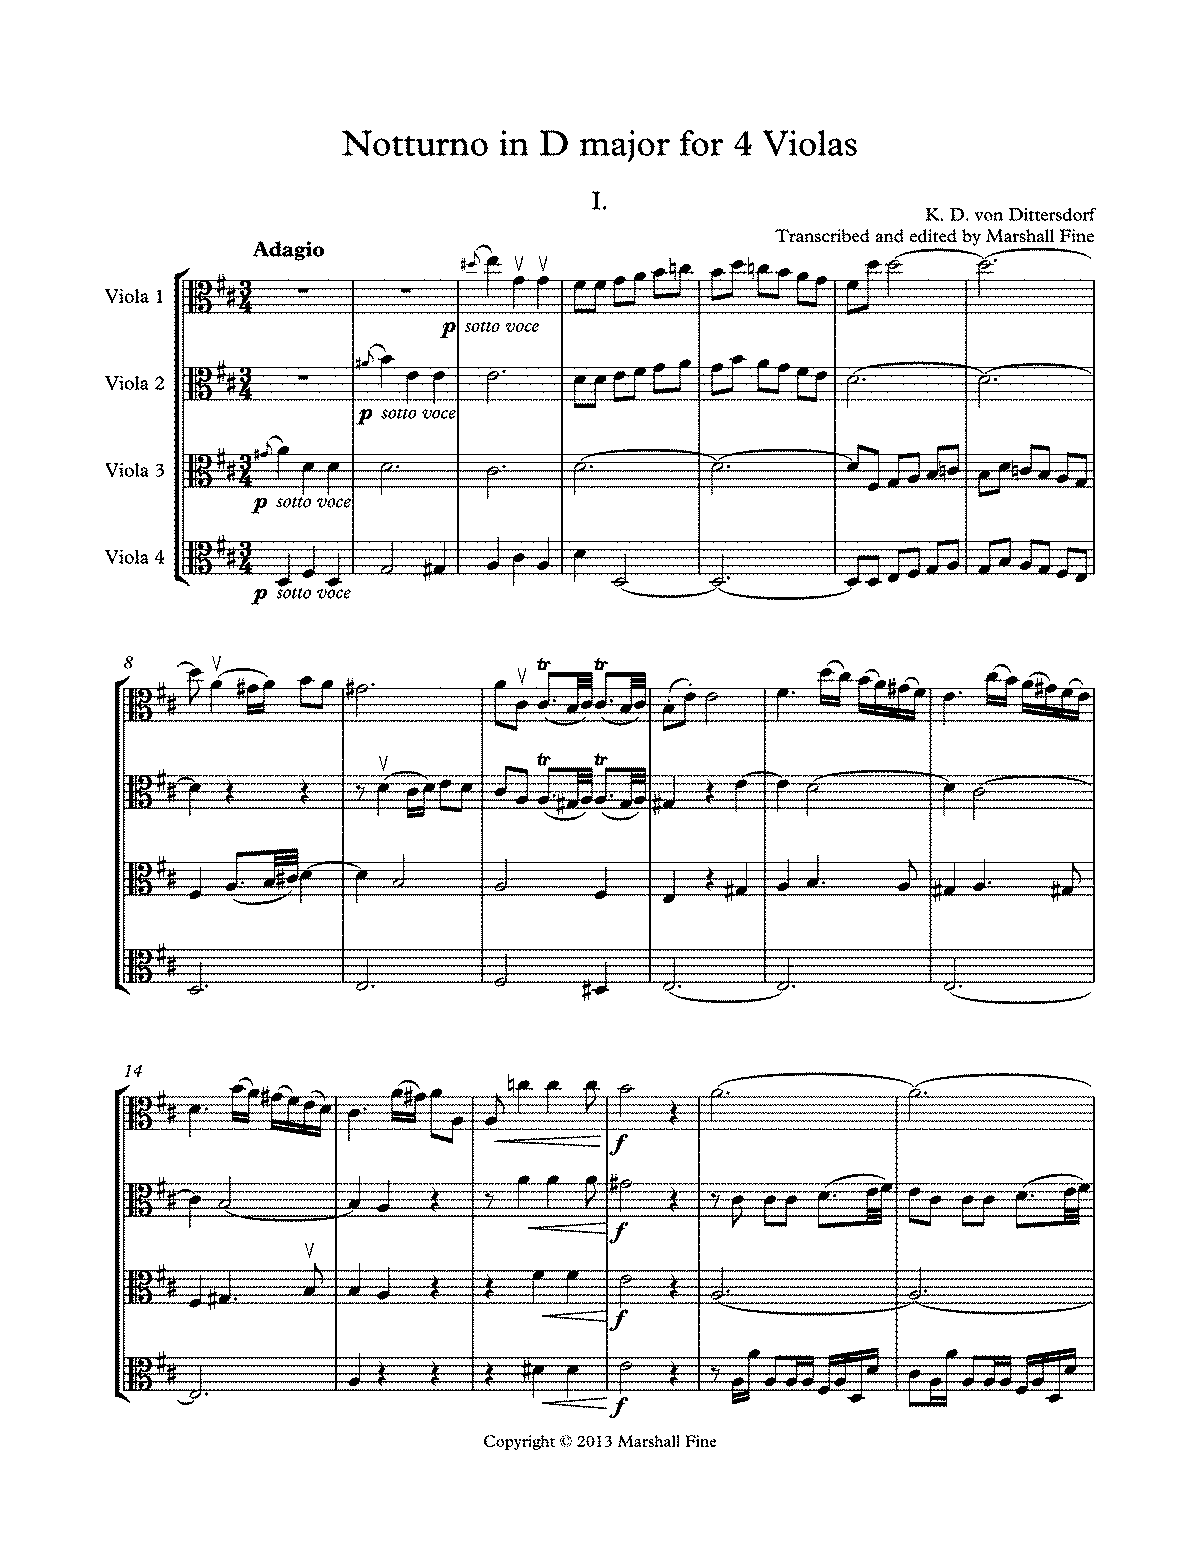 PMLP40345-Dittersdorf Notturno in D major for 4 Violas - score and parts.pdf